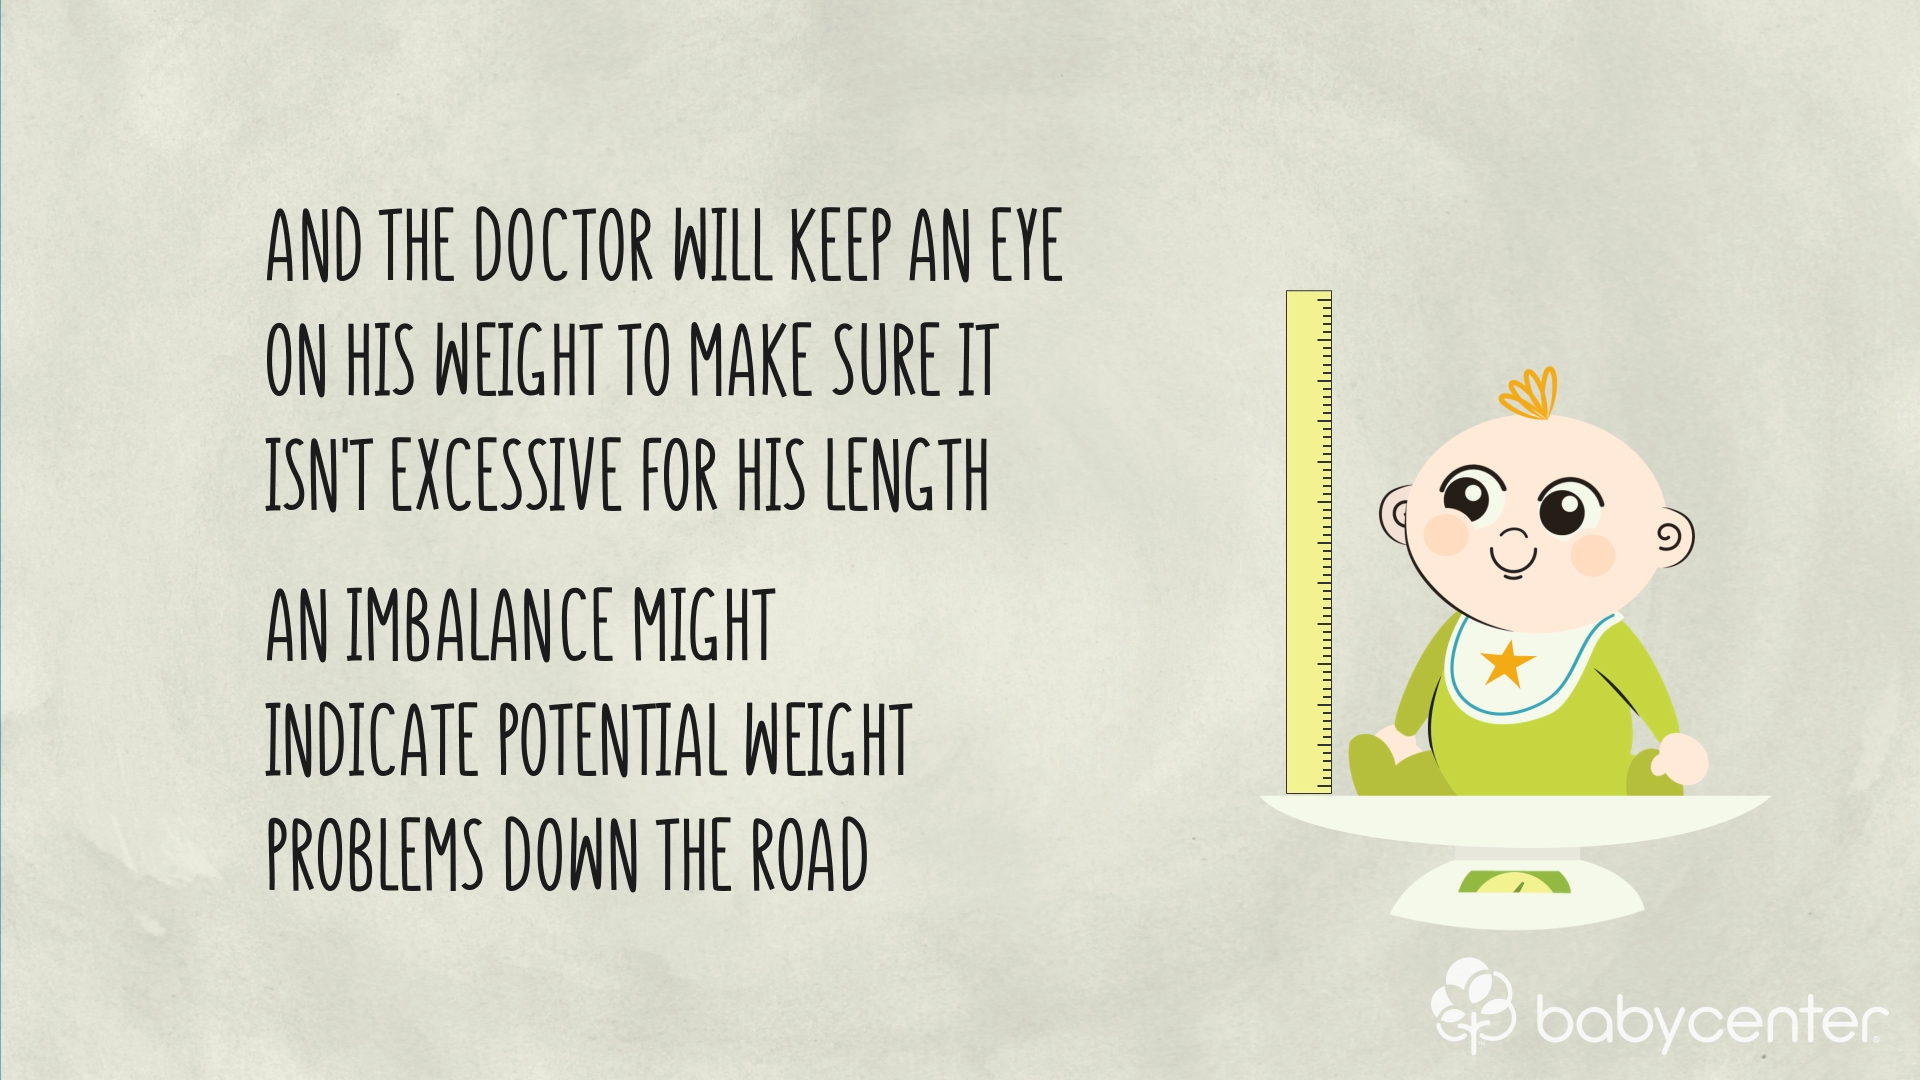 babycenter-baby-growth-animation-length-and-weight.jpg